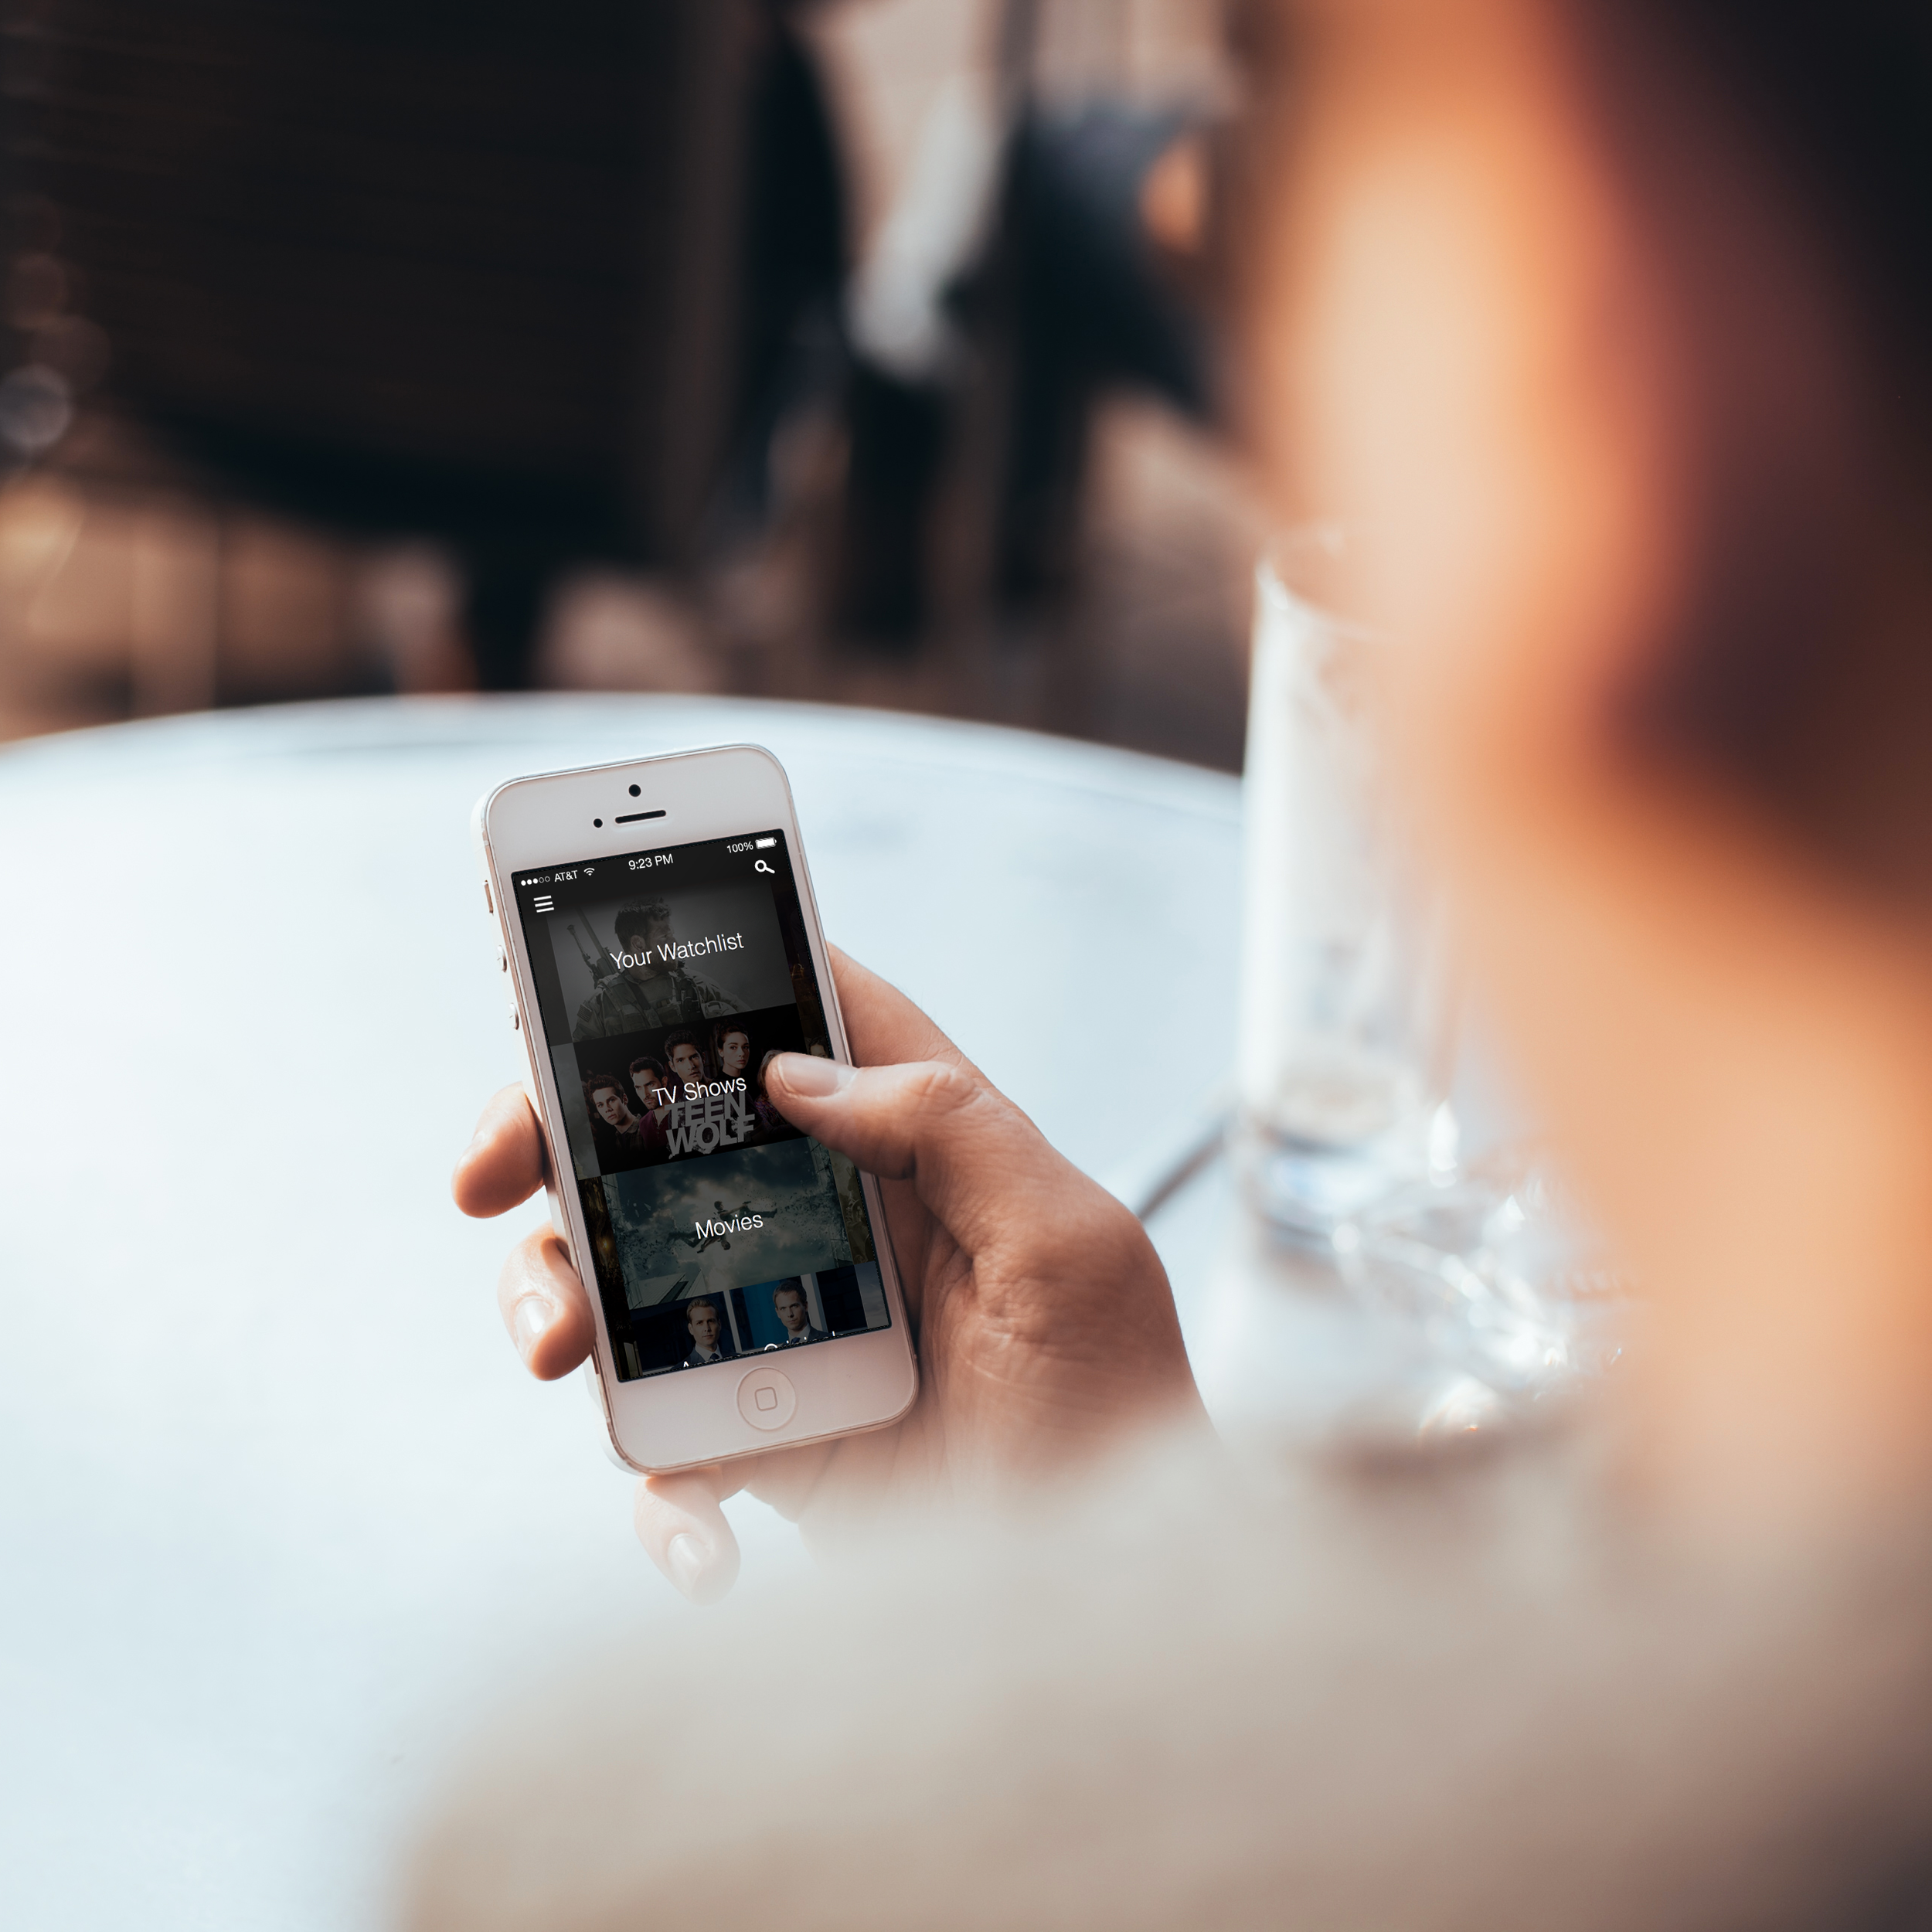 redesigning the video streaming app